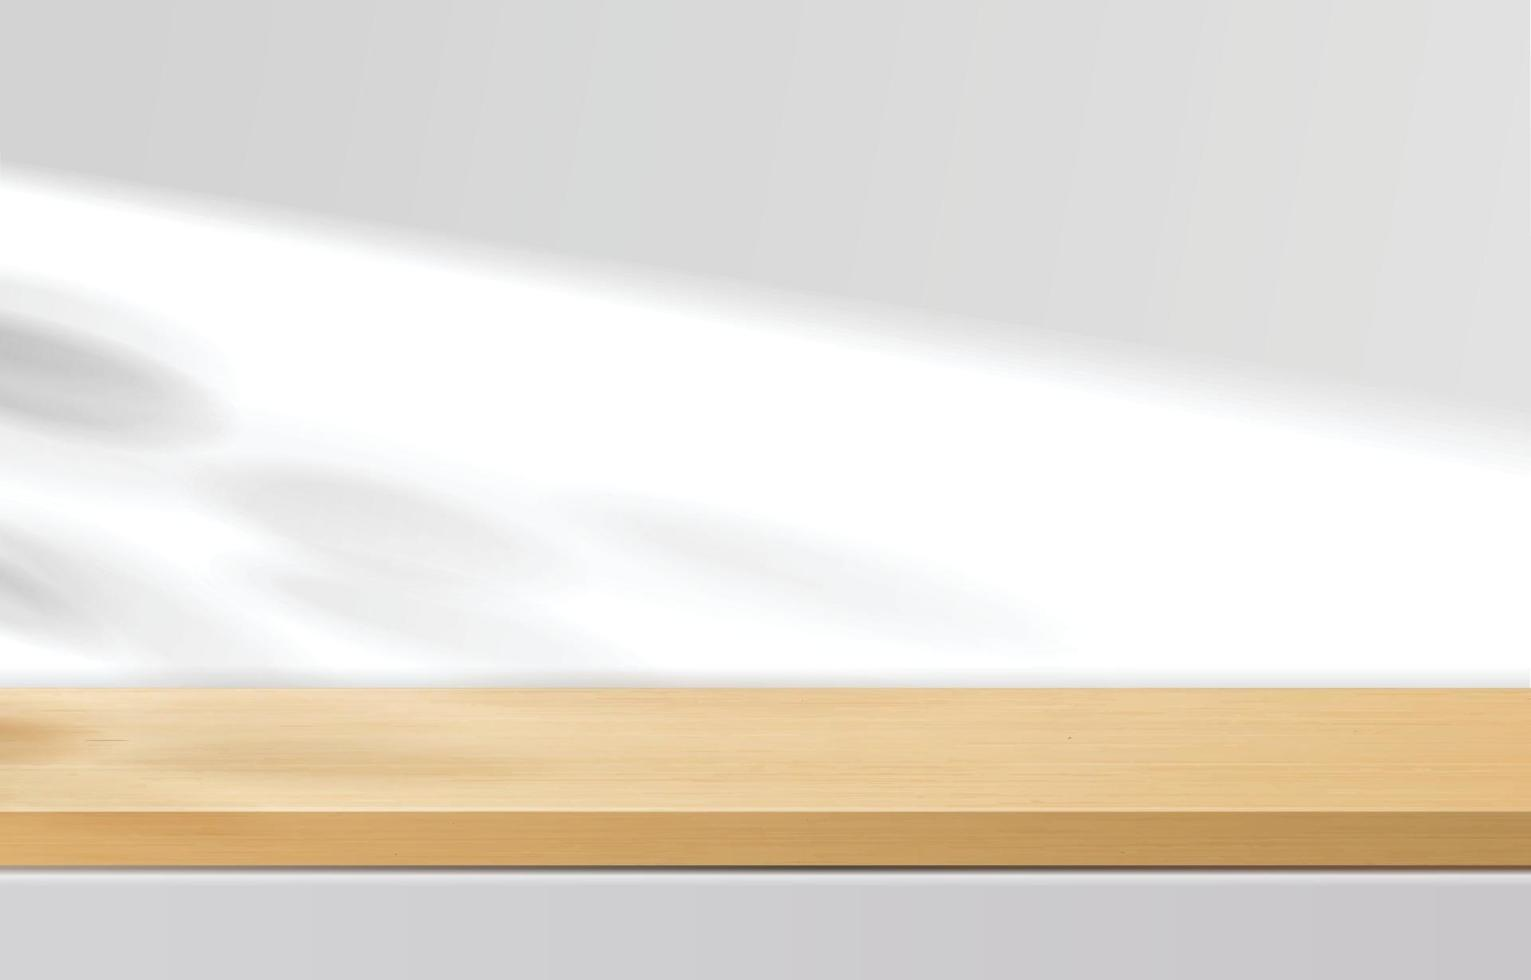 Empty minimal wooden top table, wood podium in white background with shadow leaves. for product presentation, mock up, show cosmetic product display, Podium, stage pedestal or platform. 3d vector